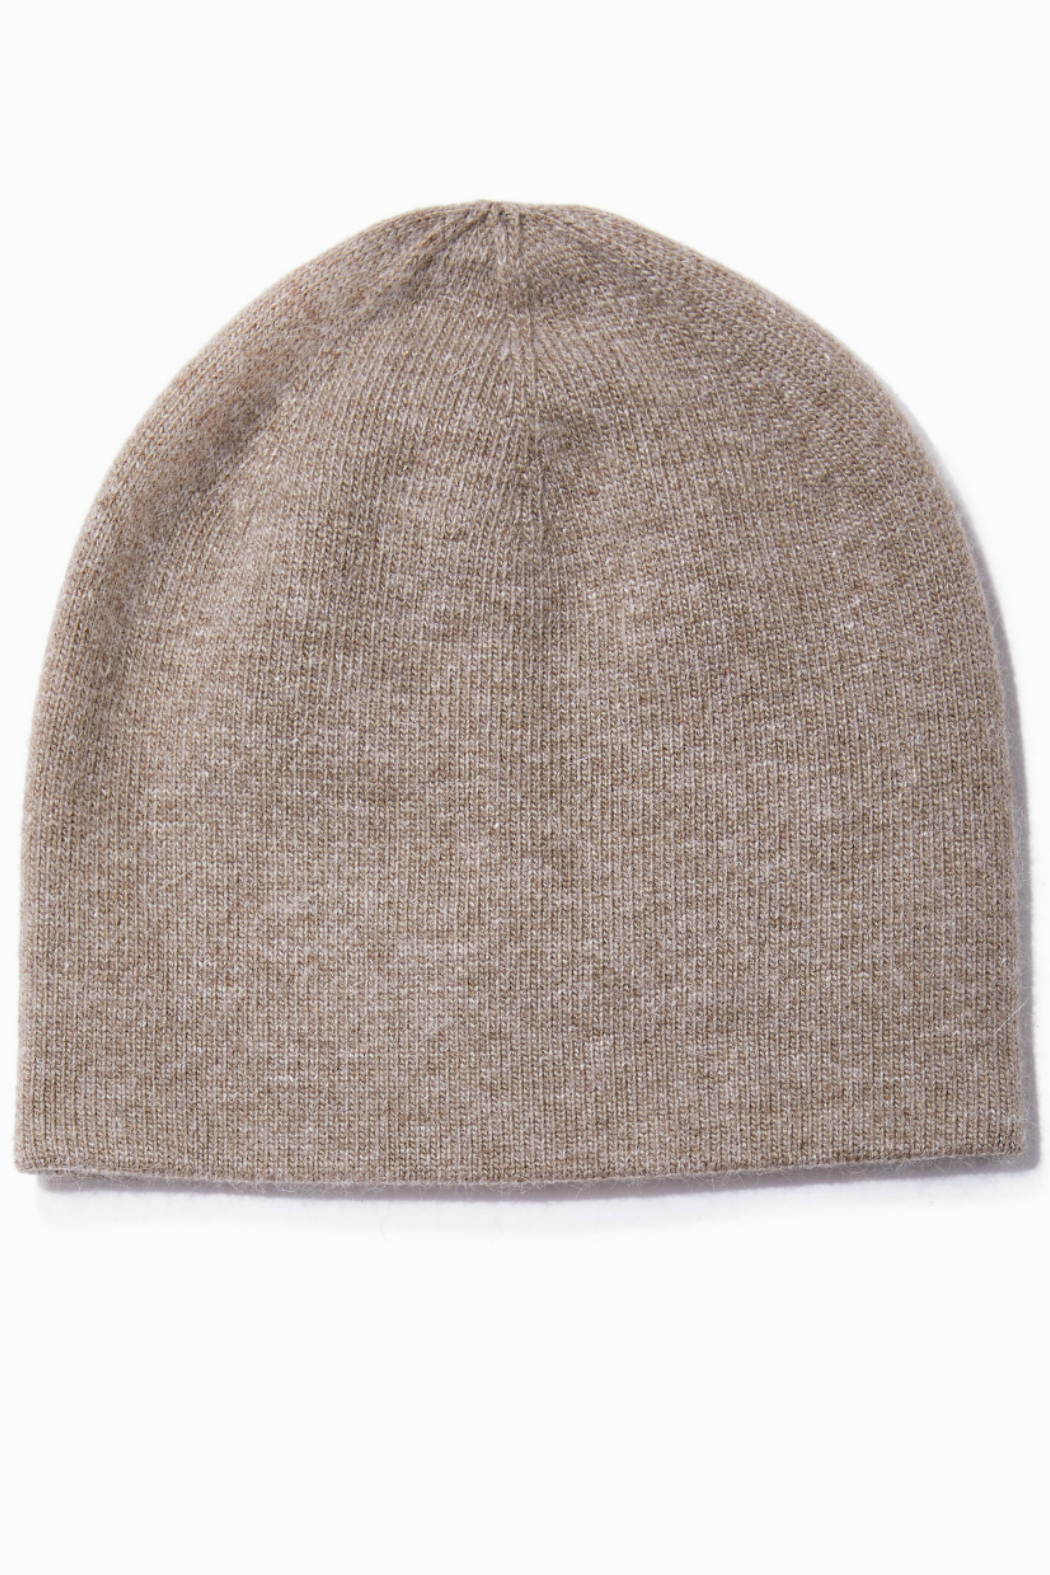 Look by M Cashmere Blended Basic Beanie - Main Image